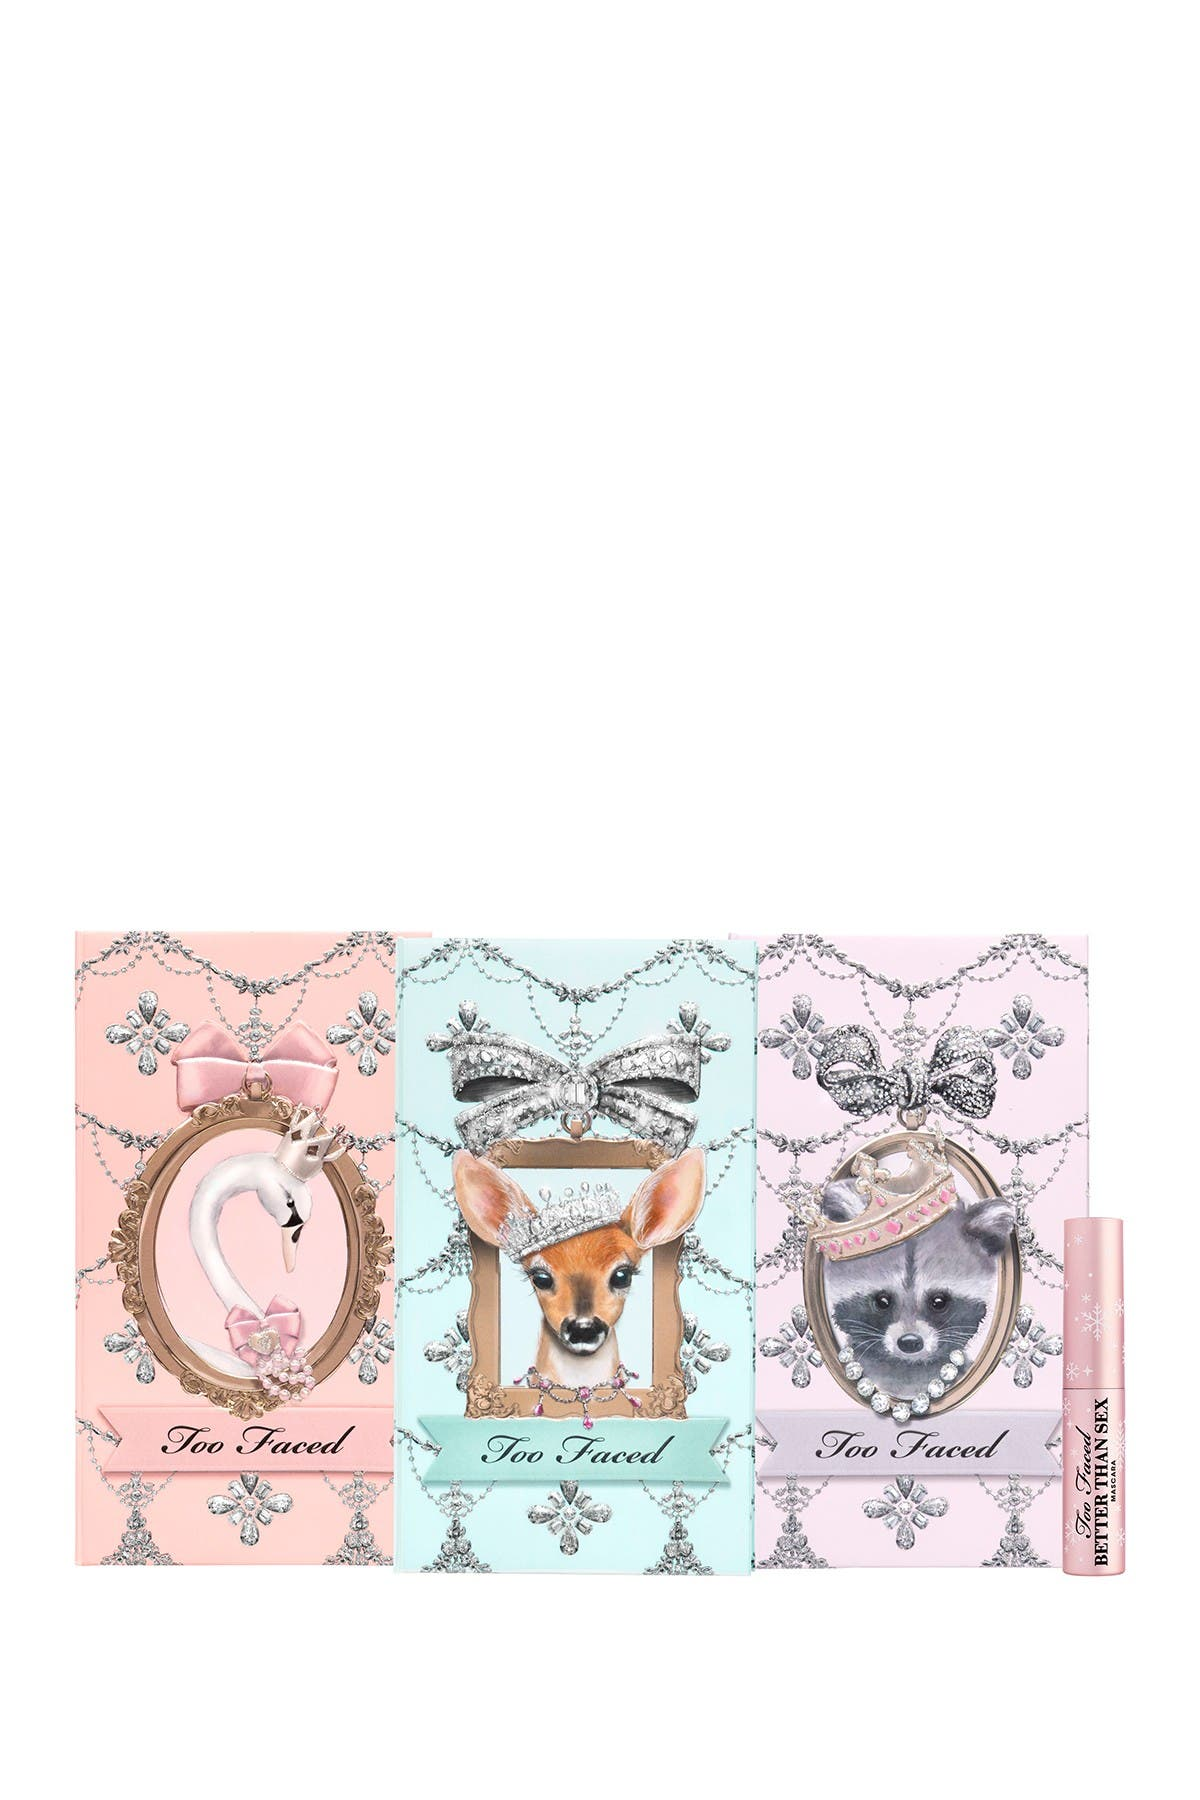 Image of Too Faced Enchanted Wonderland Makeup Set